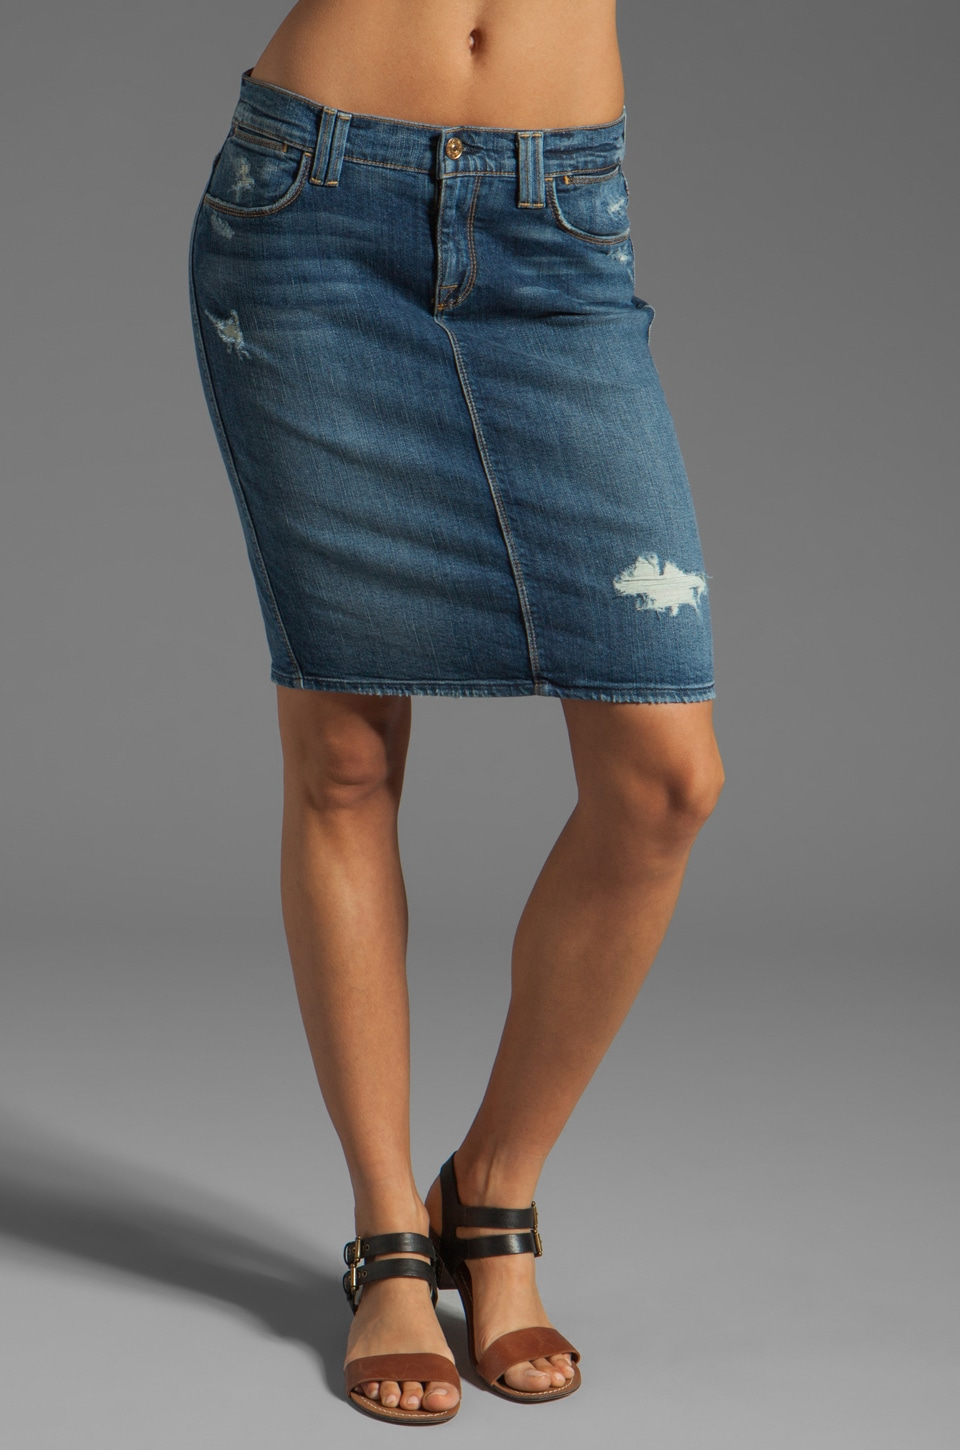 7 For All Mankind Pencil Skirt in Light Blue Distressed 3